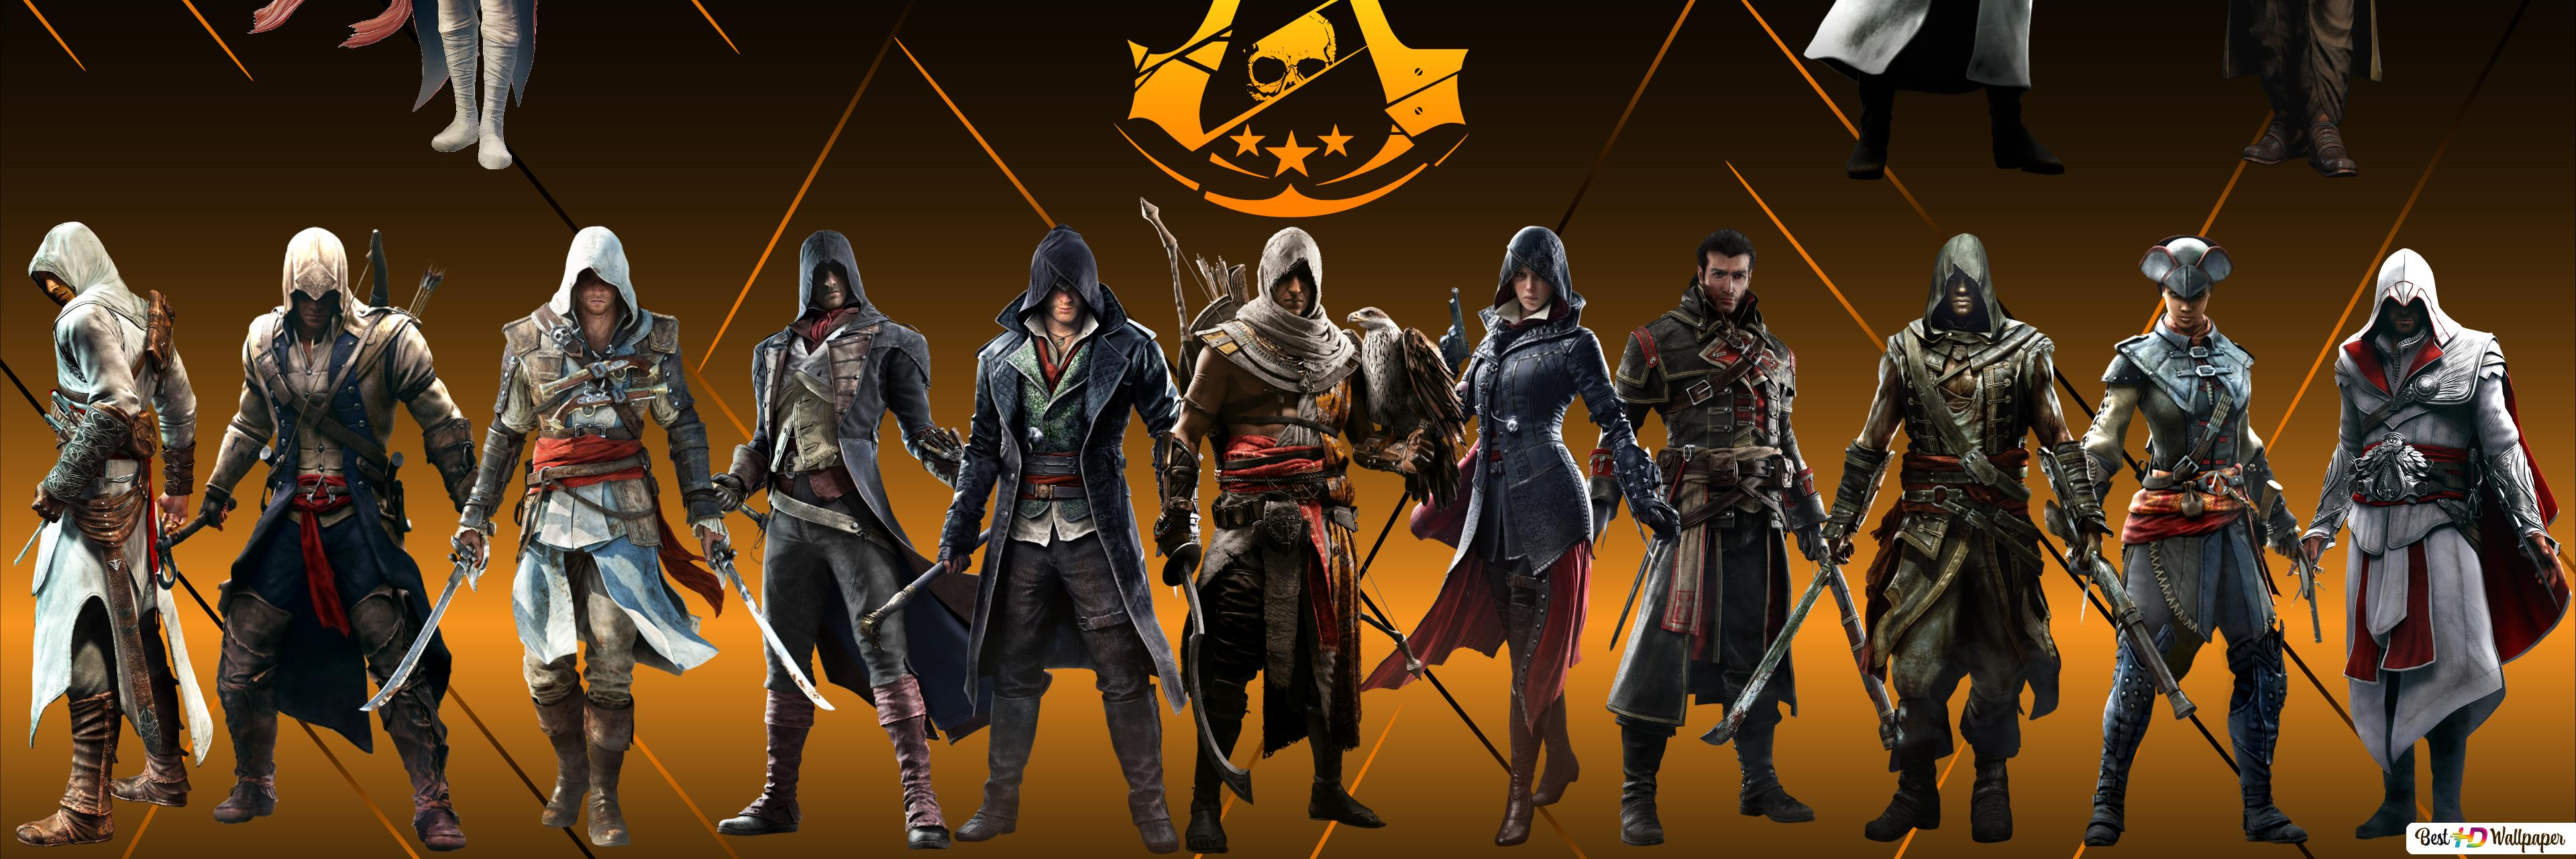 Assassin S Forever Creed Hd Wallpaper Download